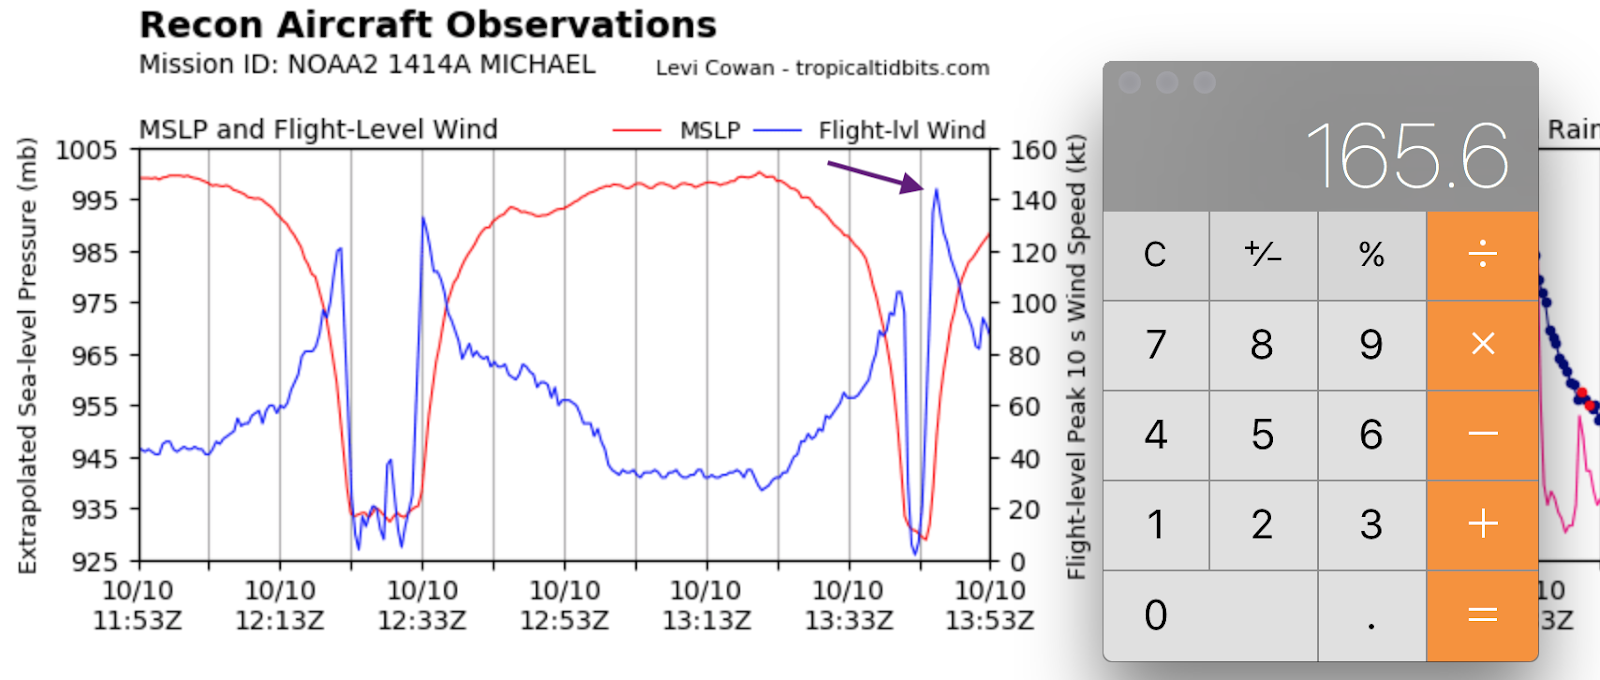 33 Knots To Mph >> Mse Creative Consulting Blog 166 Mph Winds Aloft With Michael